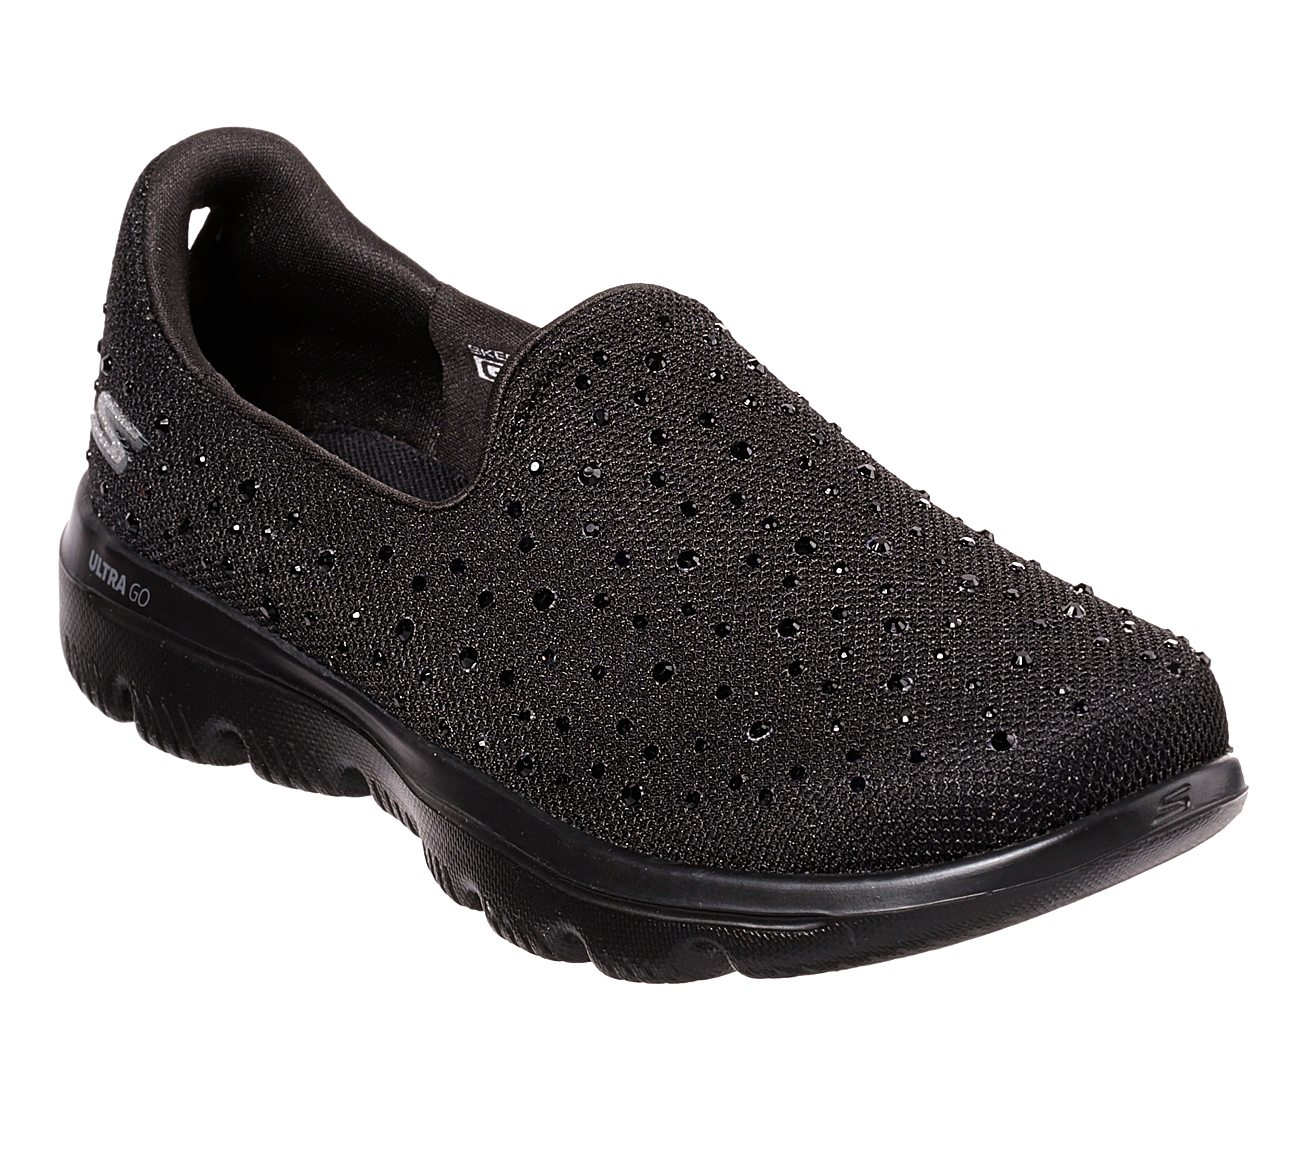 Skechers GOwalk Evolution Ultra - Enrich